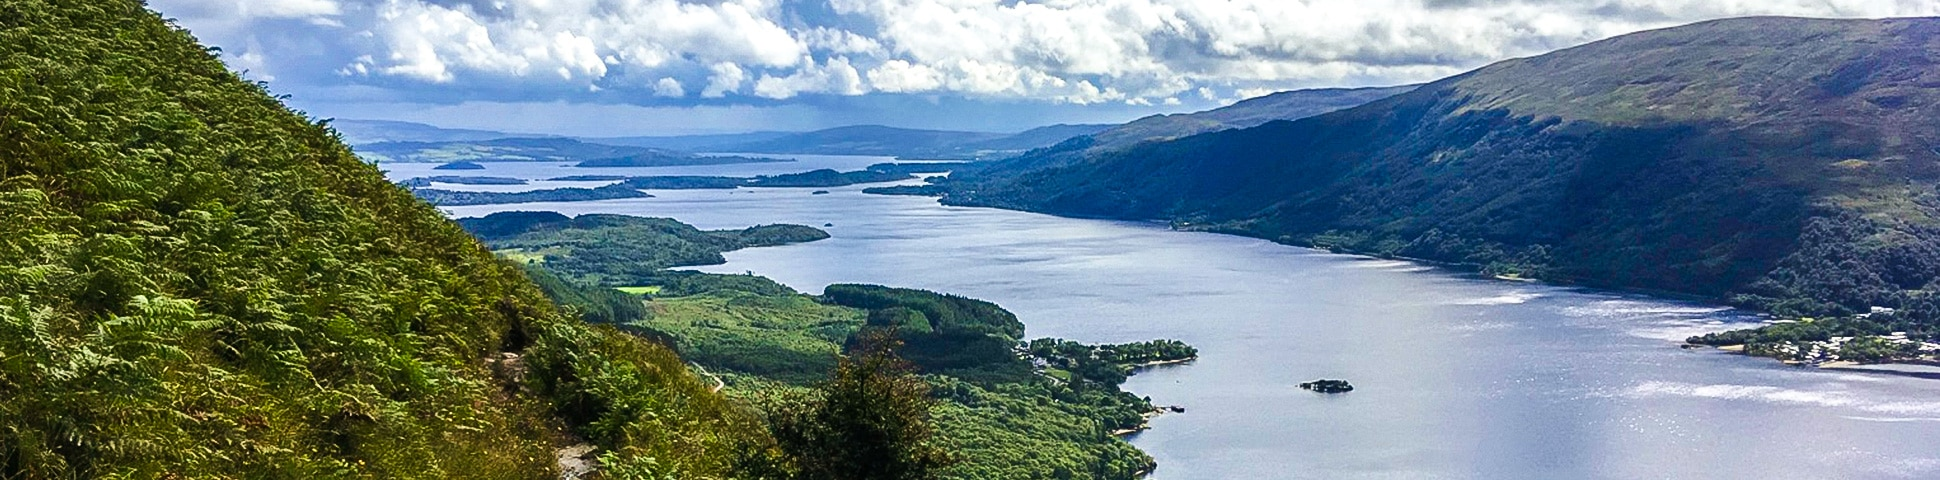 Panorama of Ben Lomond hike in Loch Lomond and The Trossachs area in Scotland